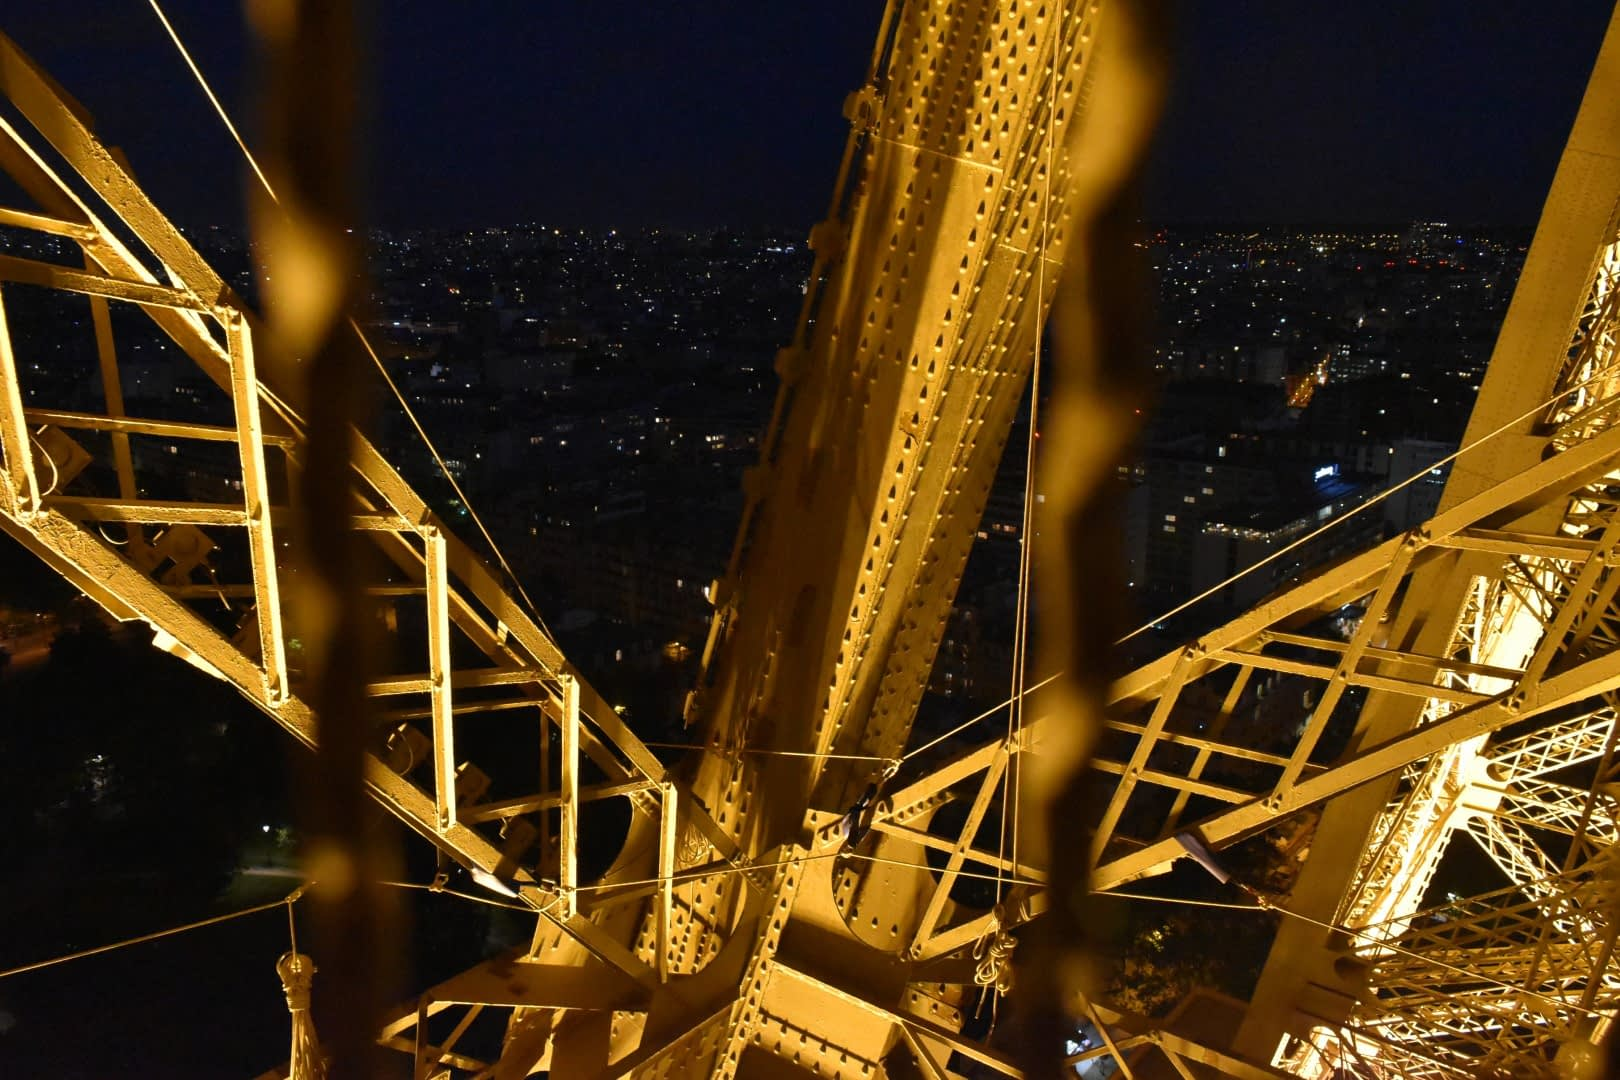 Stairs from the second floor to the bottom of the Eiffel Tower, Paris